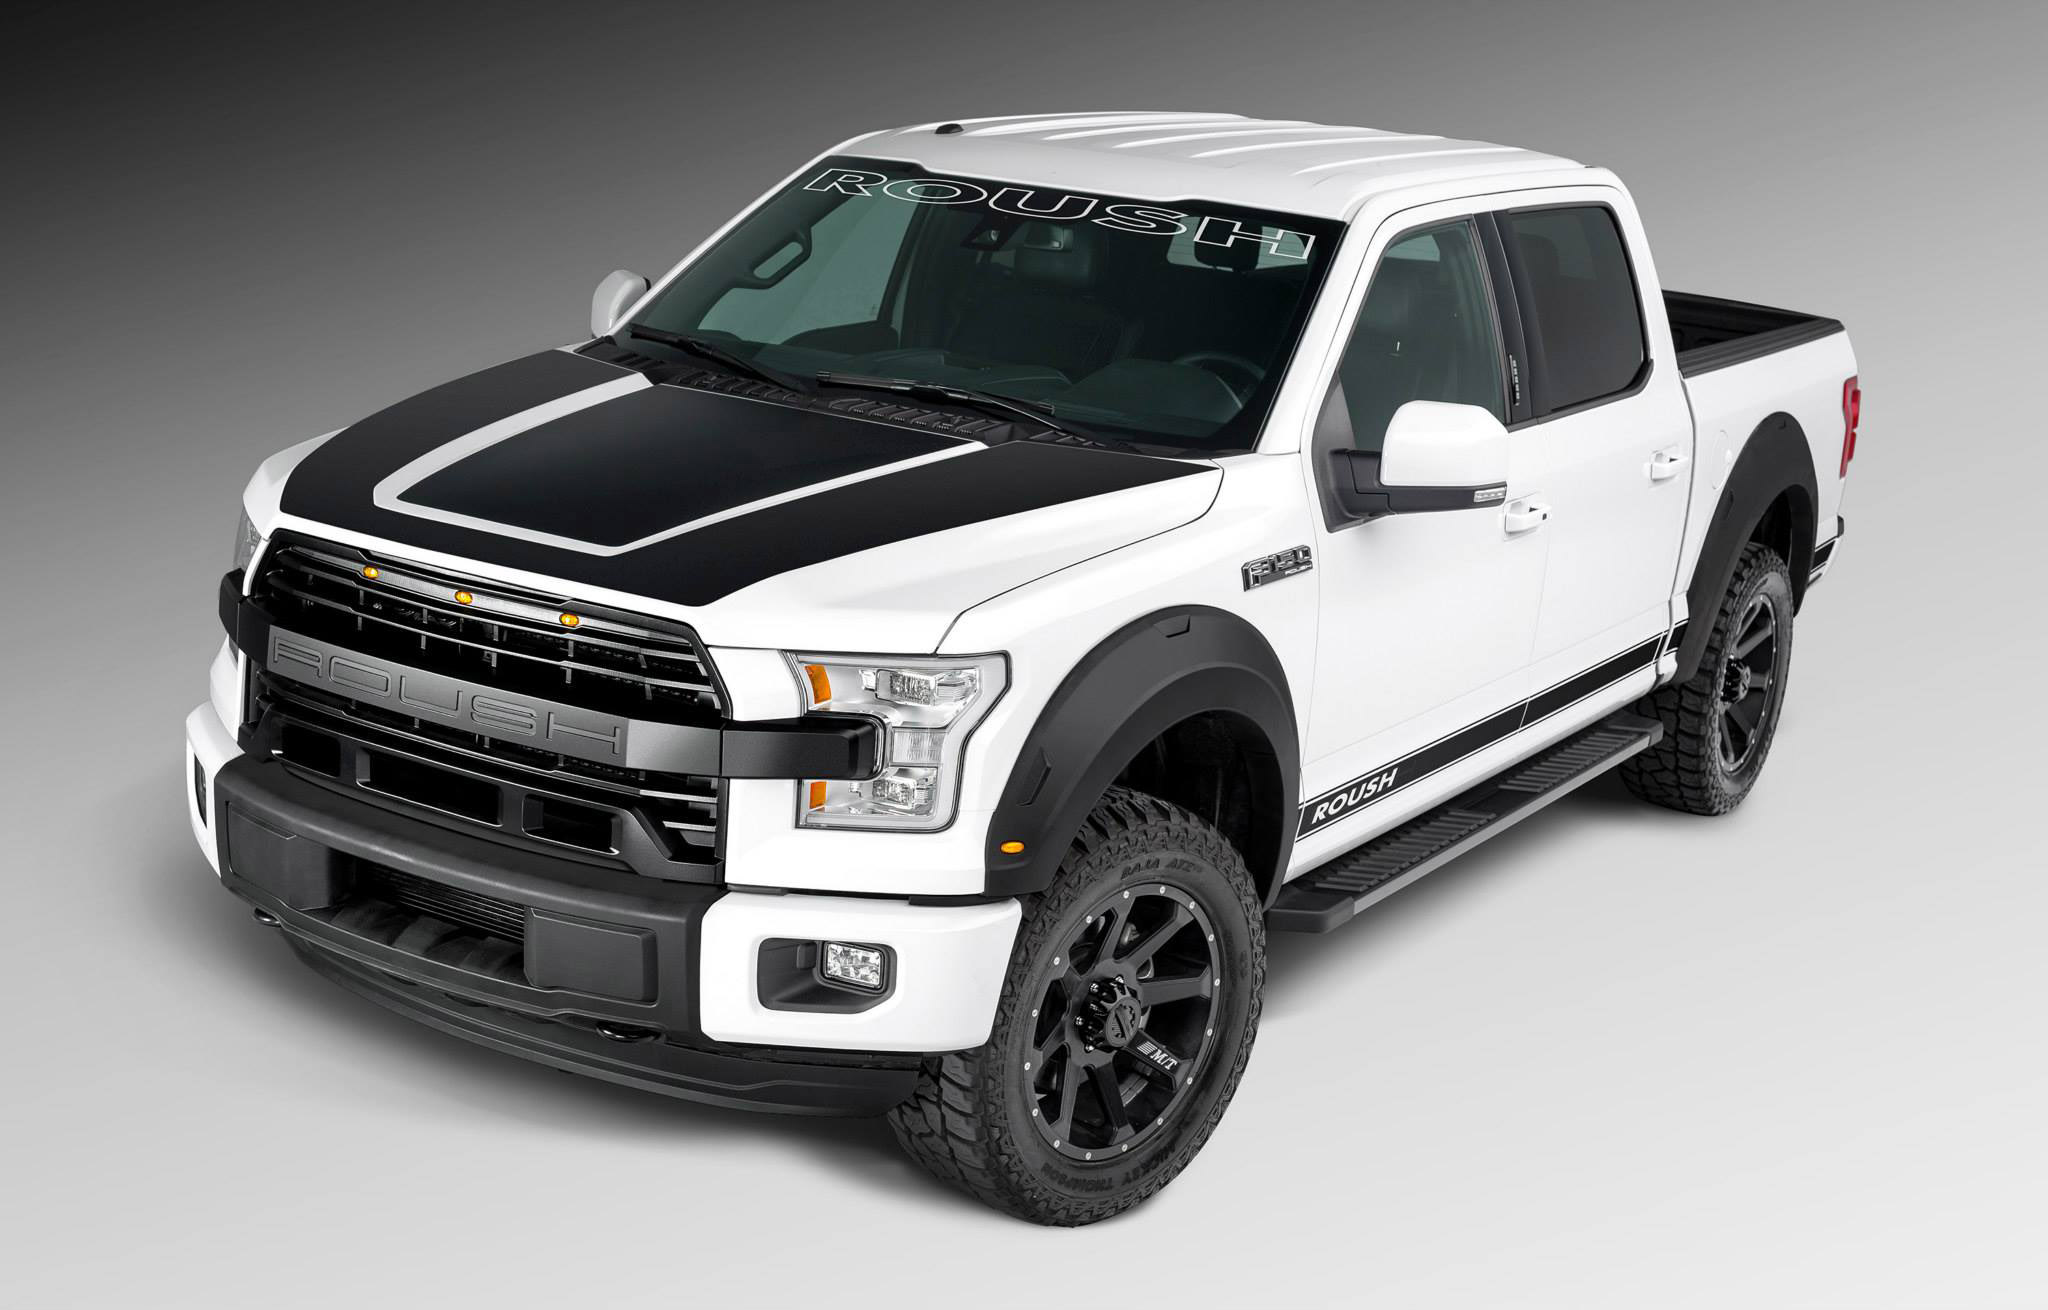 2015 roush performance ford f 150 muscle cars news and pictures. Black Bedroom Furniture Sets. Home Design Ideas